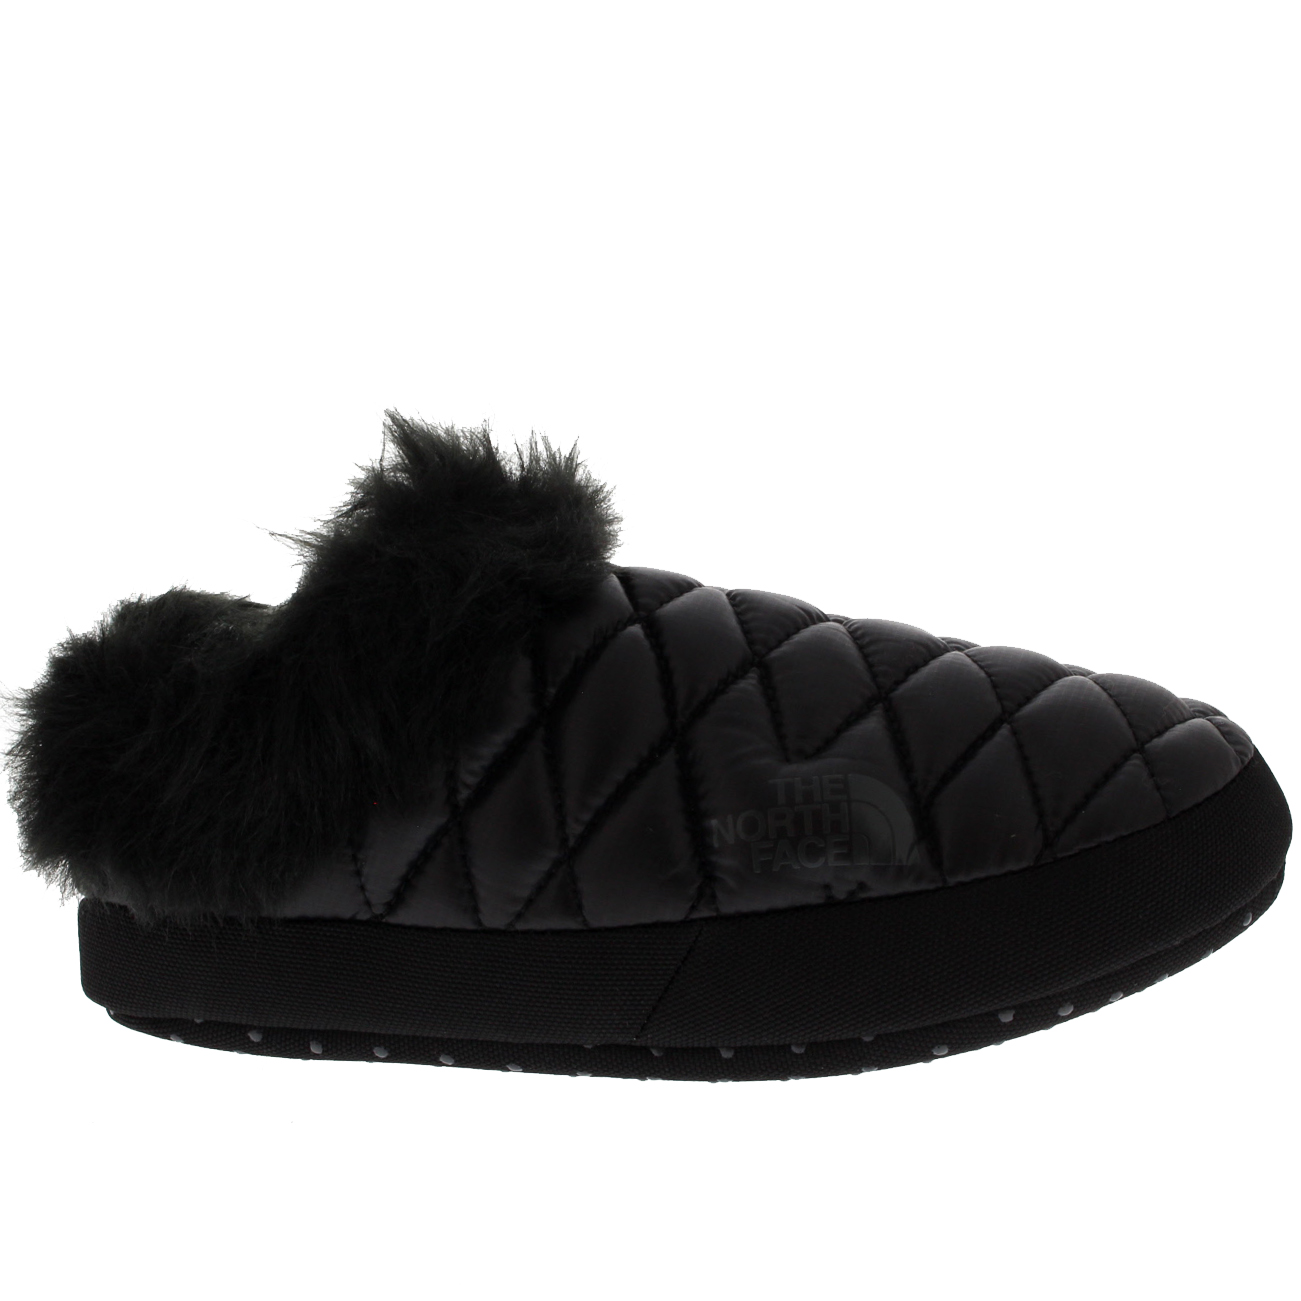 Womens-The-North-Face-Thermoball-Tent-Mule-IV-  sc 1 st  eBay & Womens The North Face Thermoball Tent Mule IV Cosy Faux Fur ...